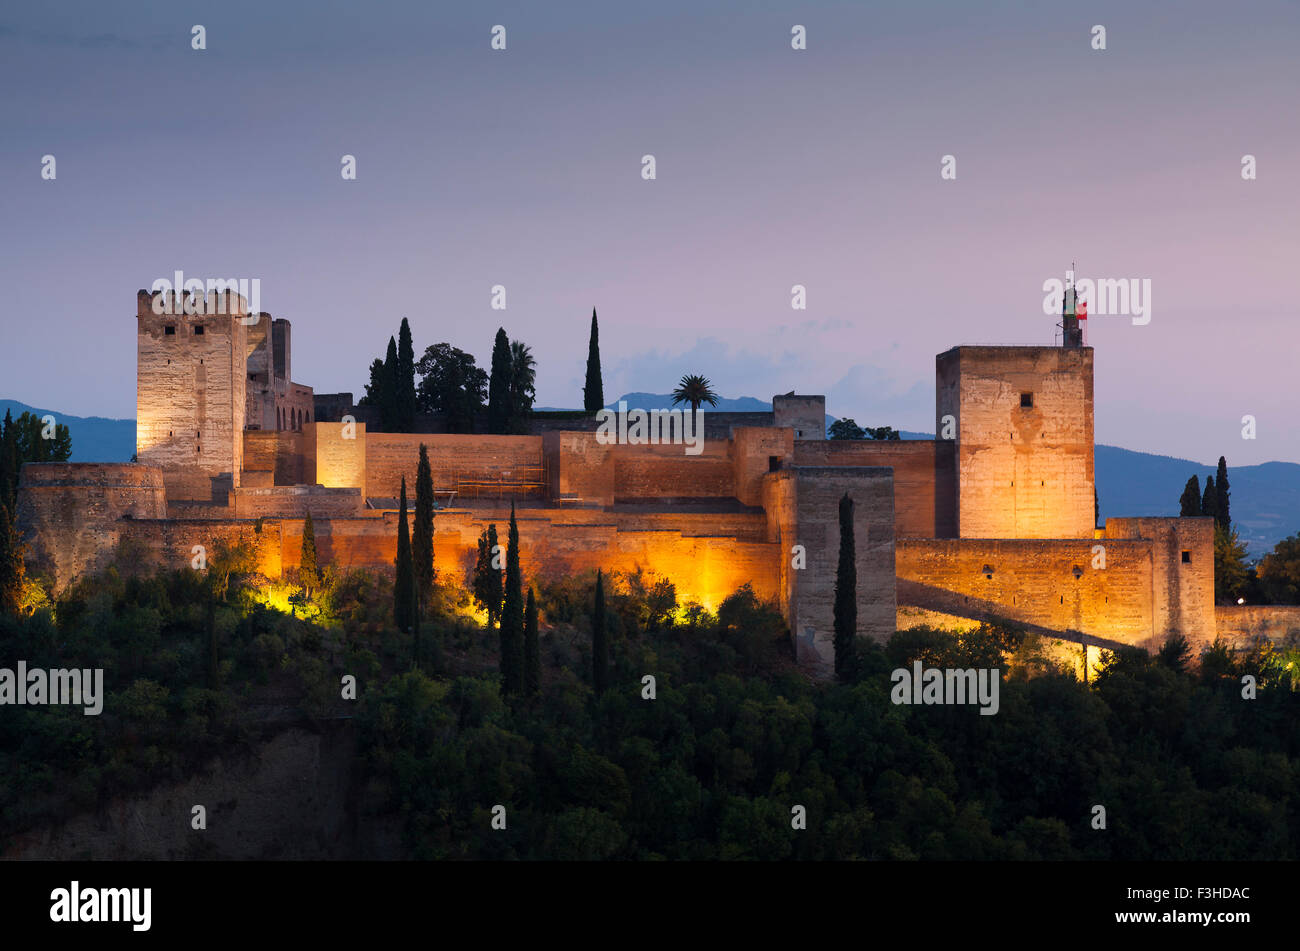 Nightfall in La Alhambra, Granada, Andalucia, Spain - Stock Image